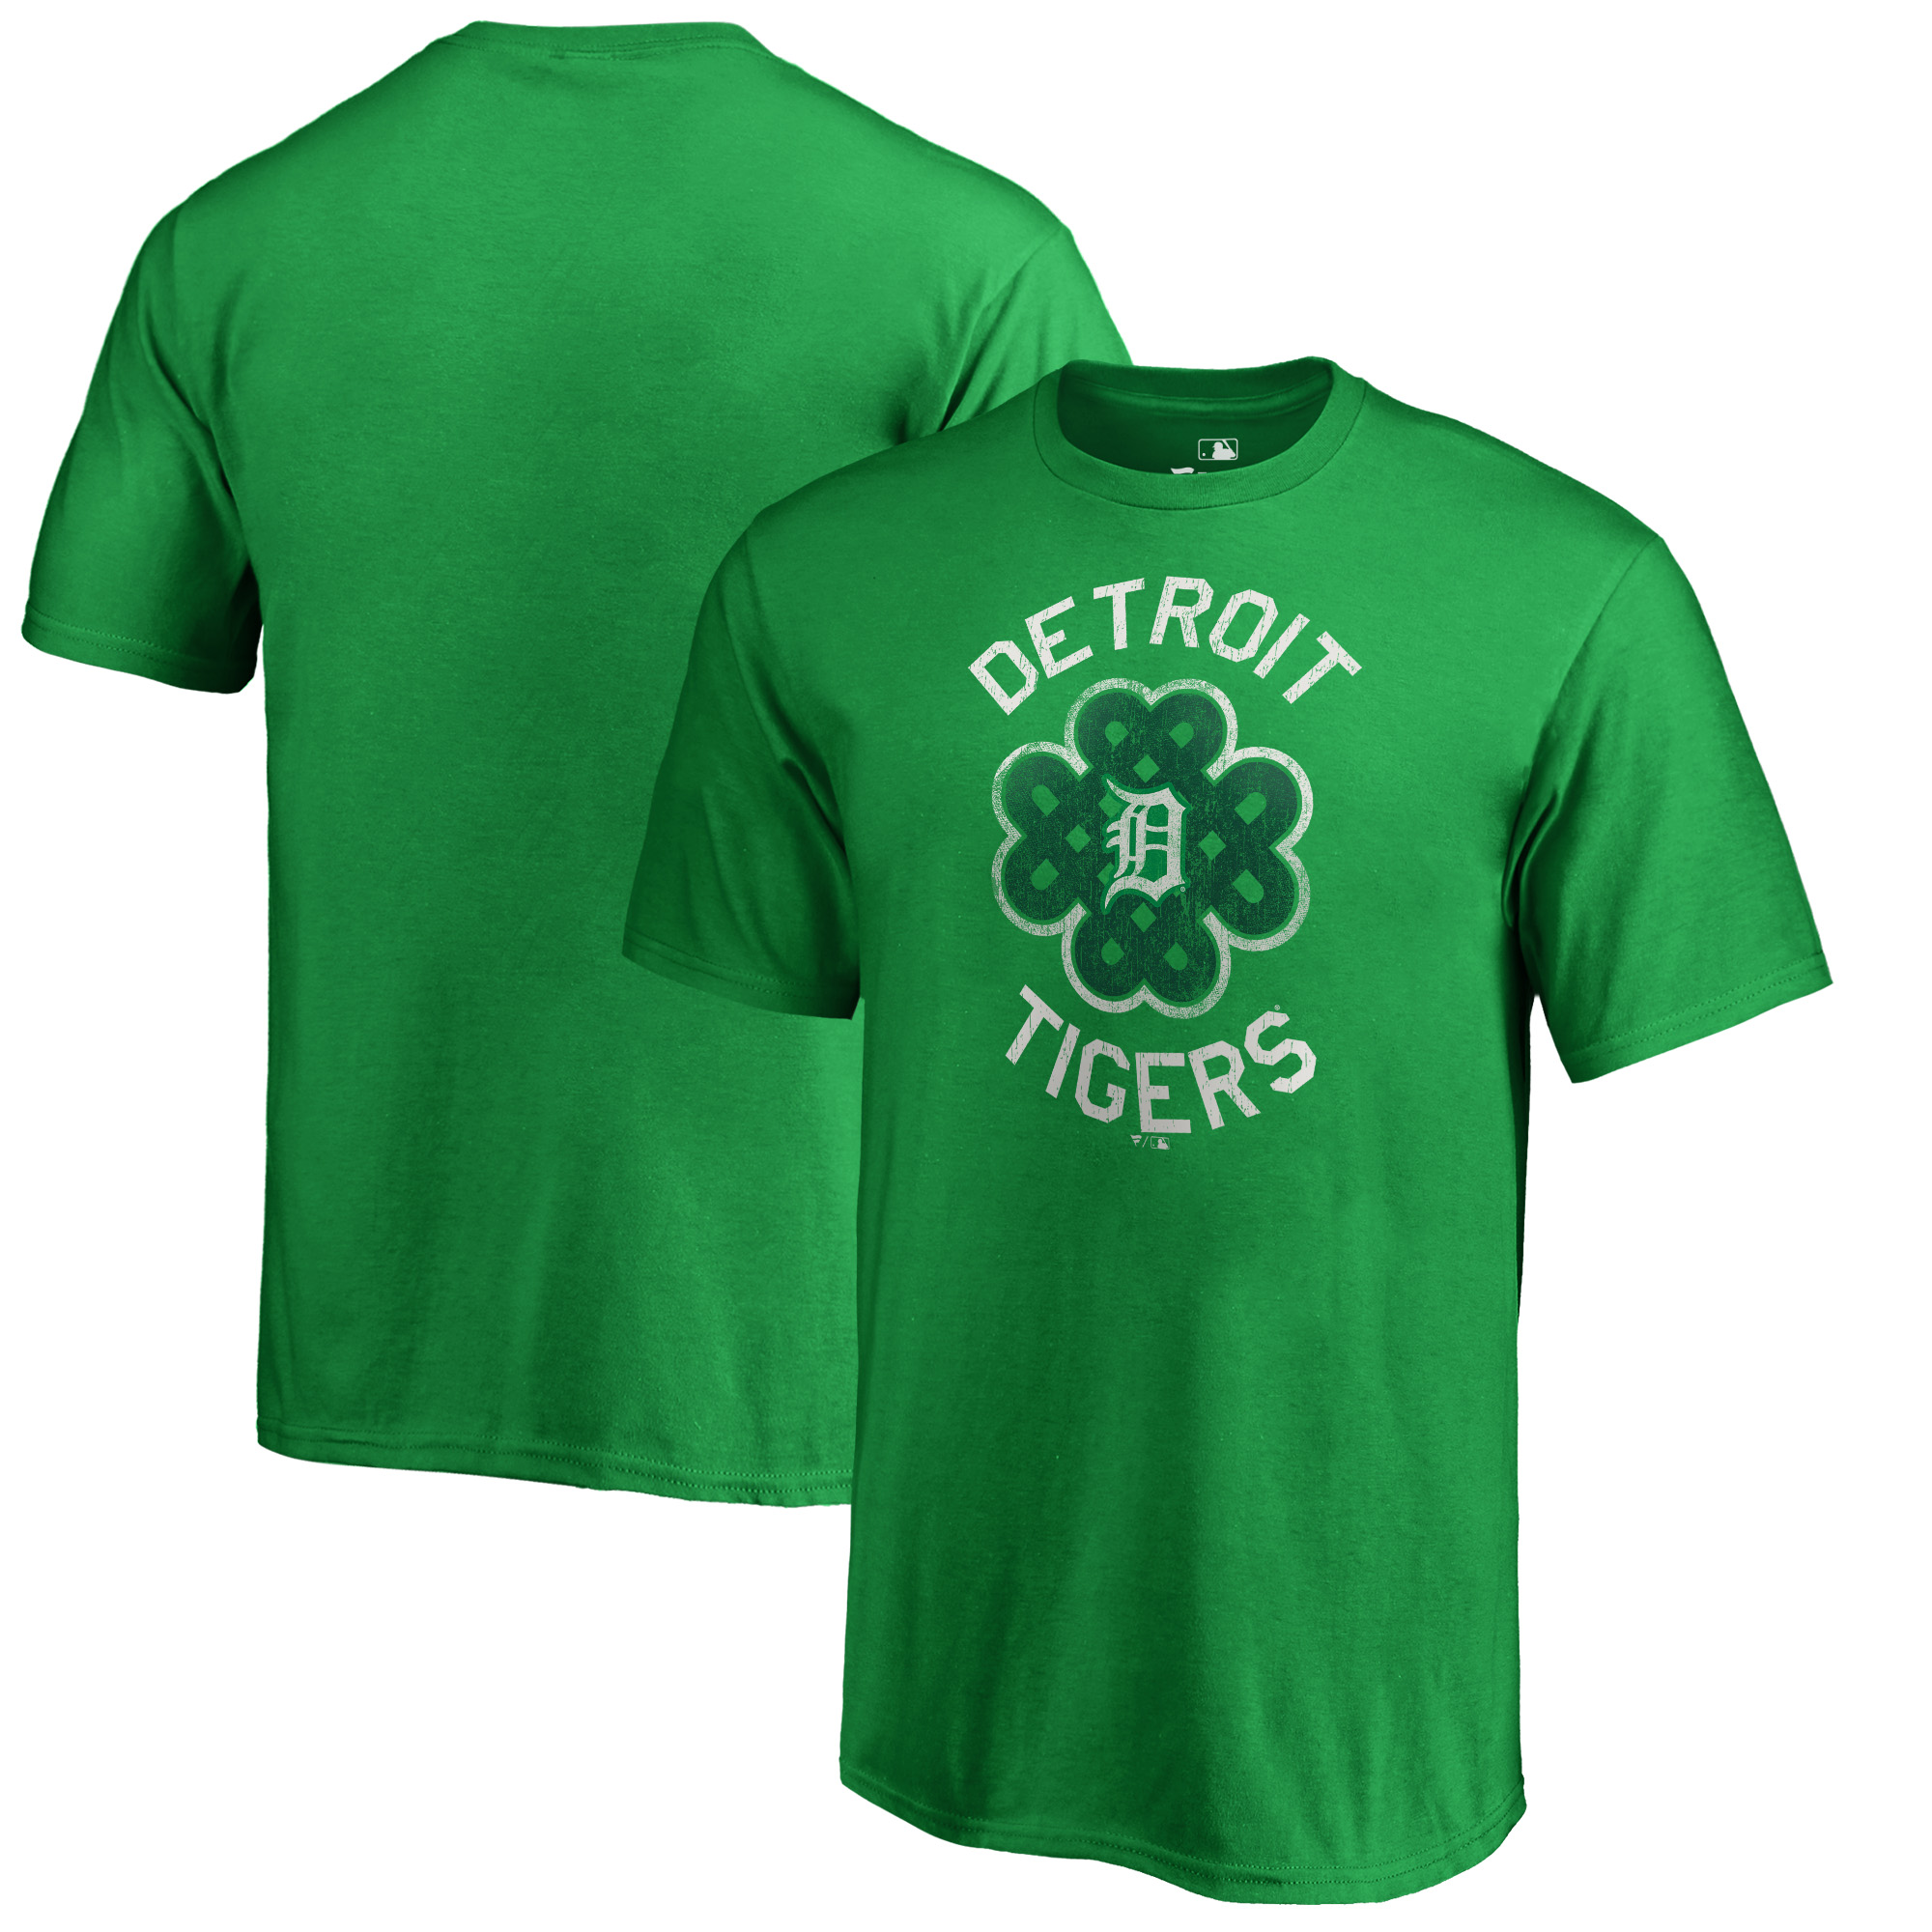 Detroit Tigers Fanatics Branded Youth St. Patrick's Day Luck Tradition T-Shirt - Kelly Green